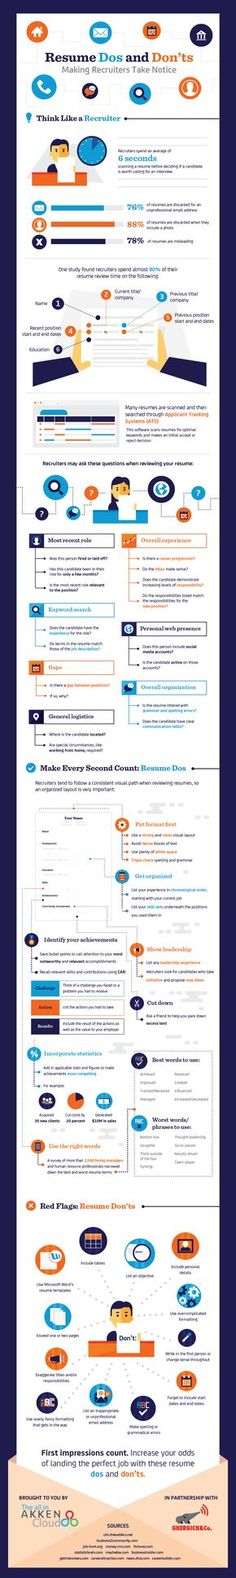 infographic  How to write a functional resume JOB interview - how to write functional resume